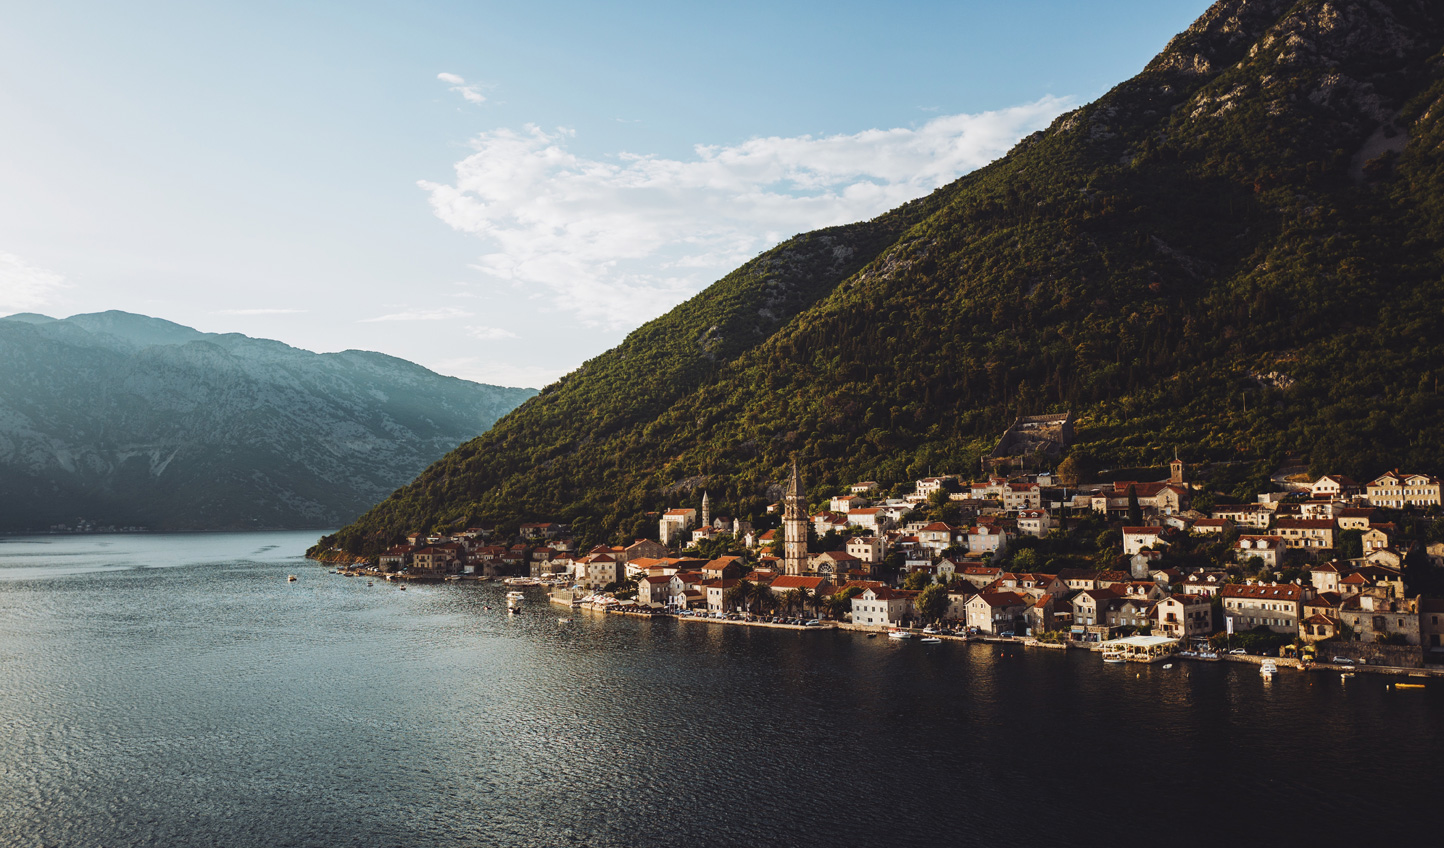 Explore the UNESCO town of Kotor